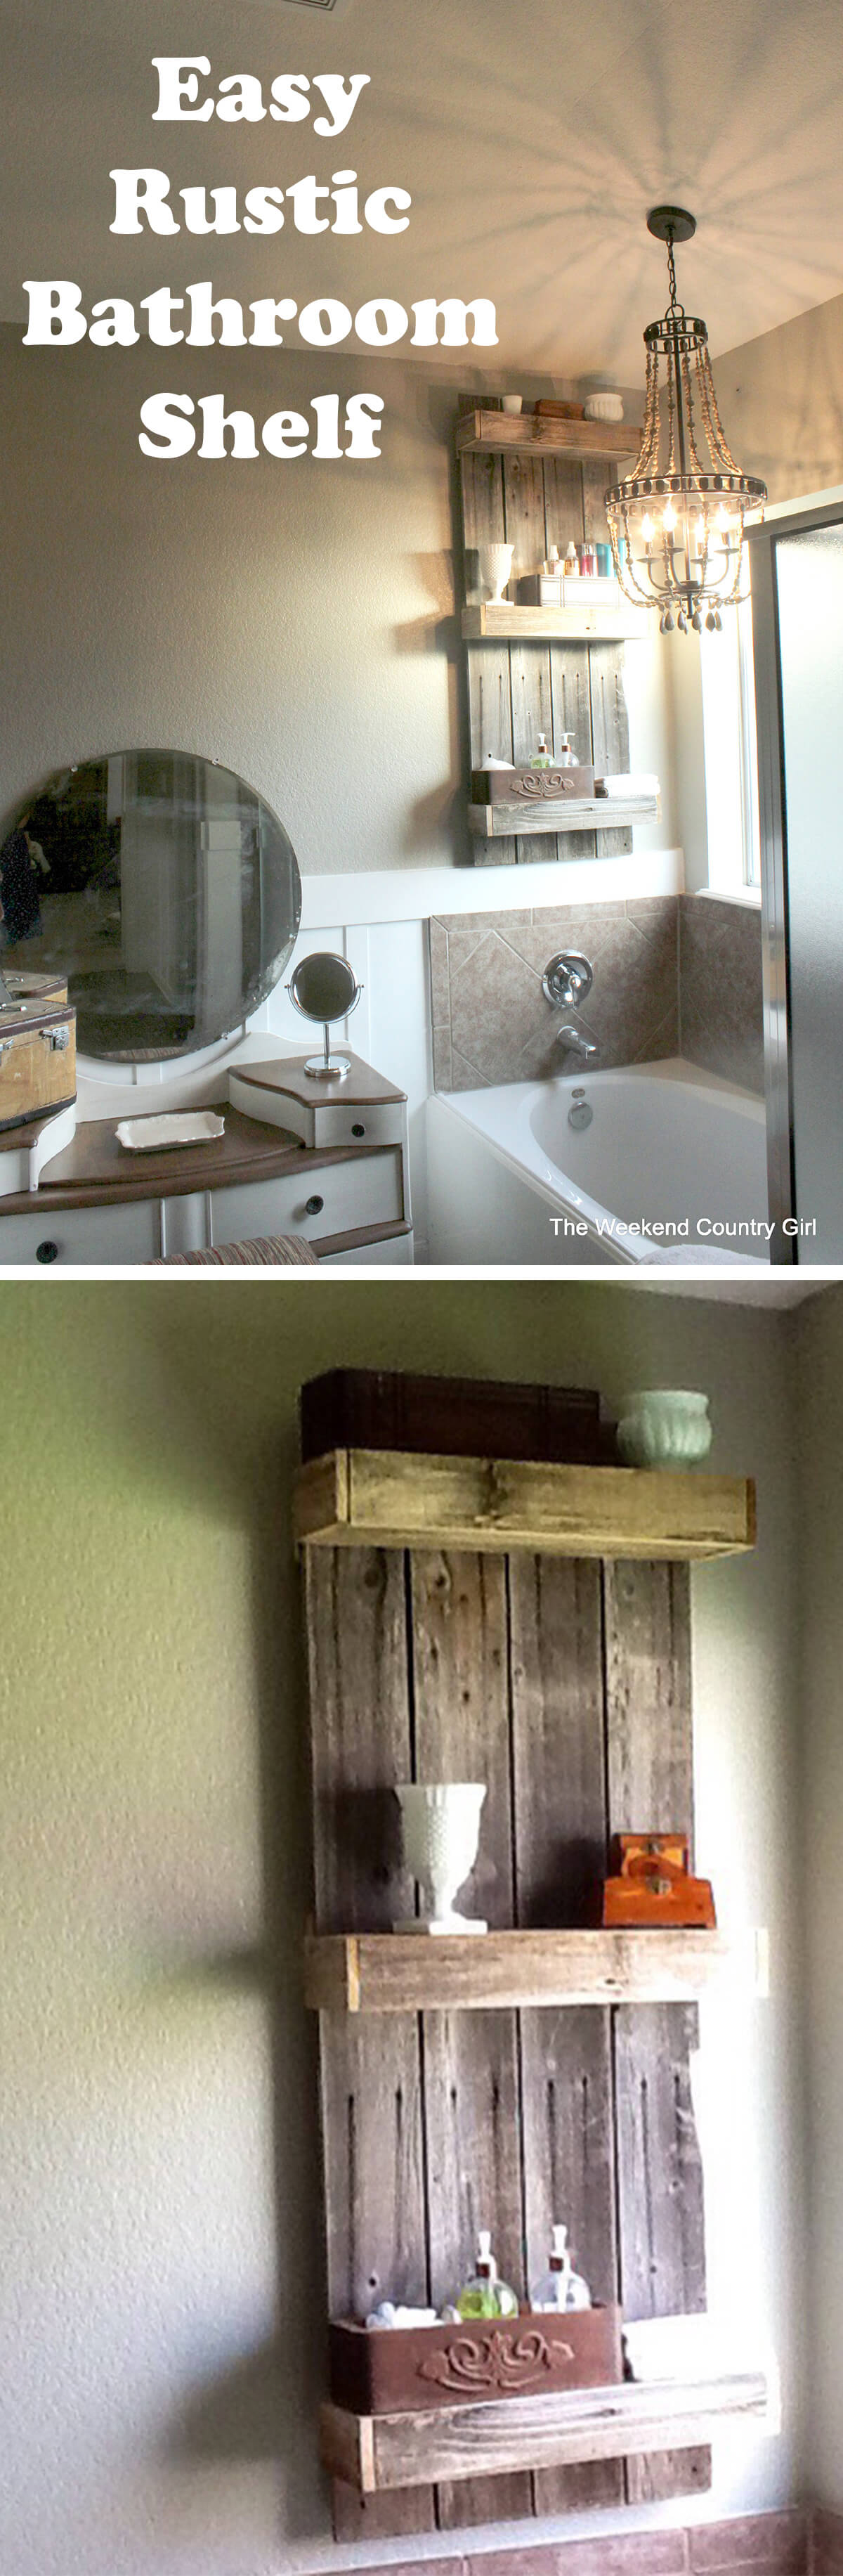 Fullsize Of Bathroom Shelf Decorations